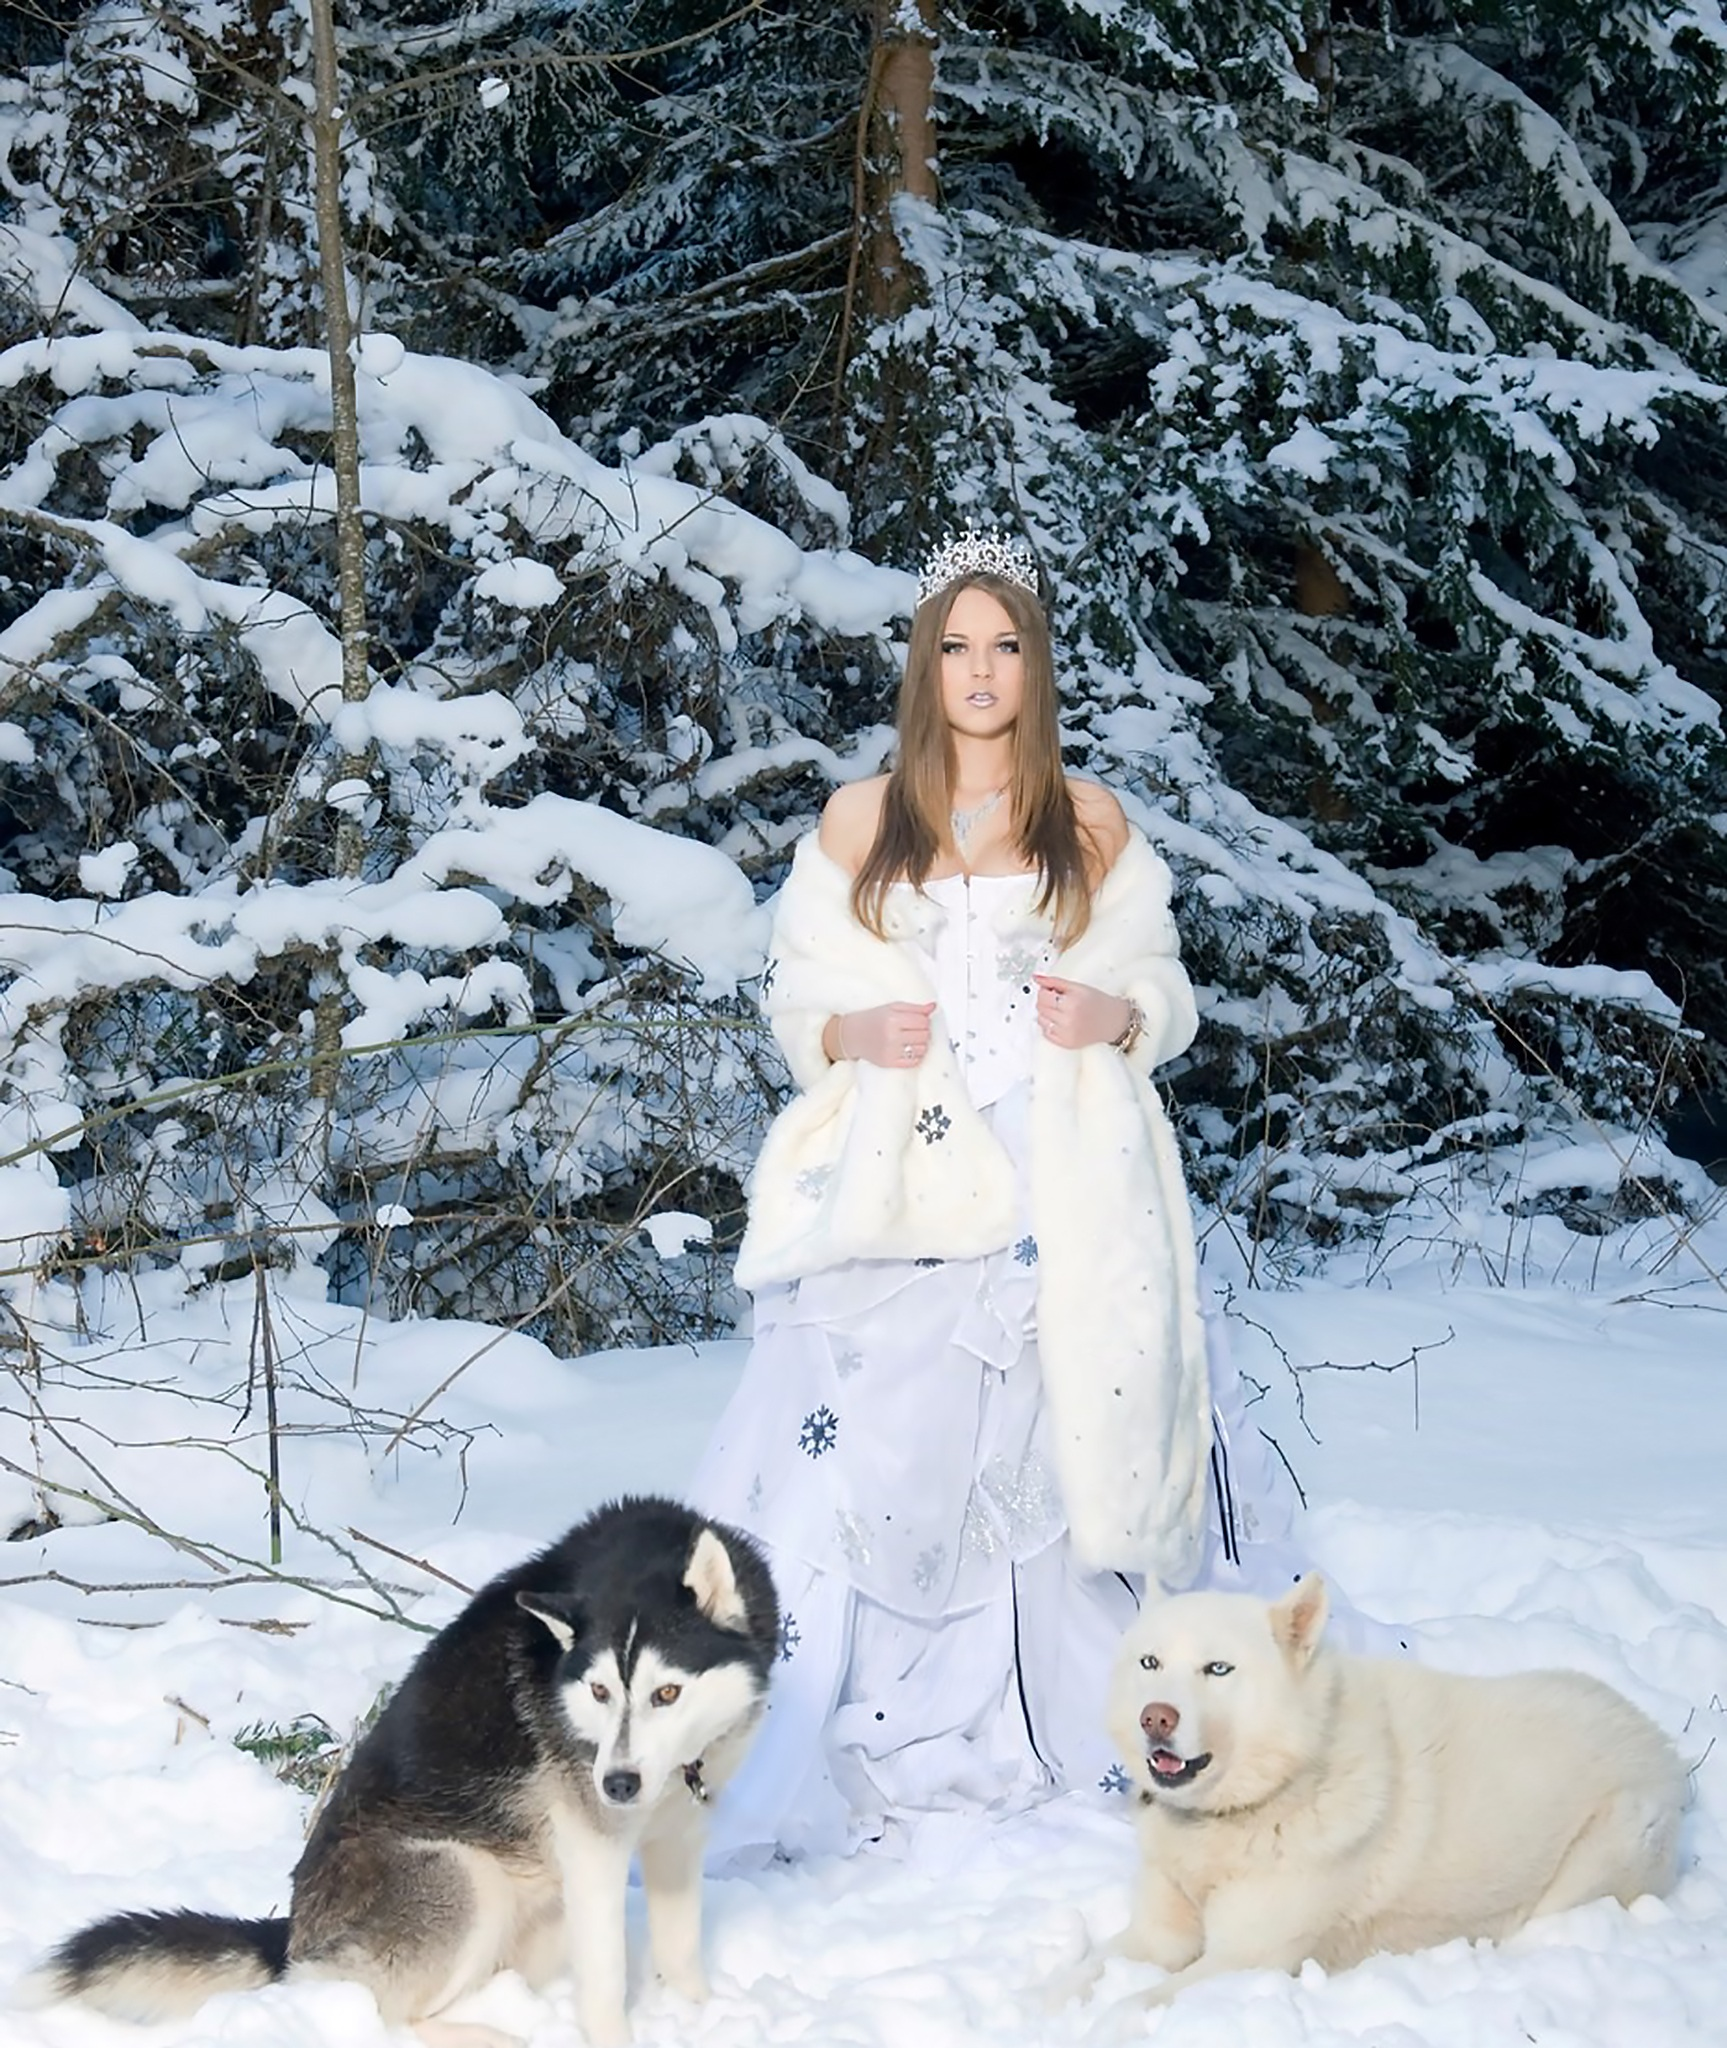 Lady with Wolves, Animal, Frozen, Girl, Ice, HQ Photo